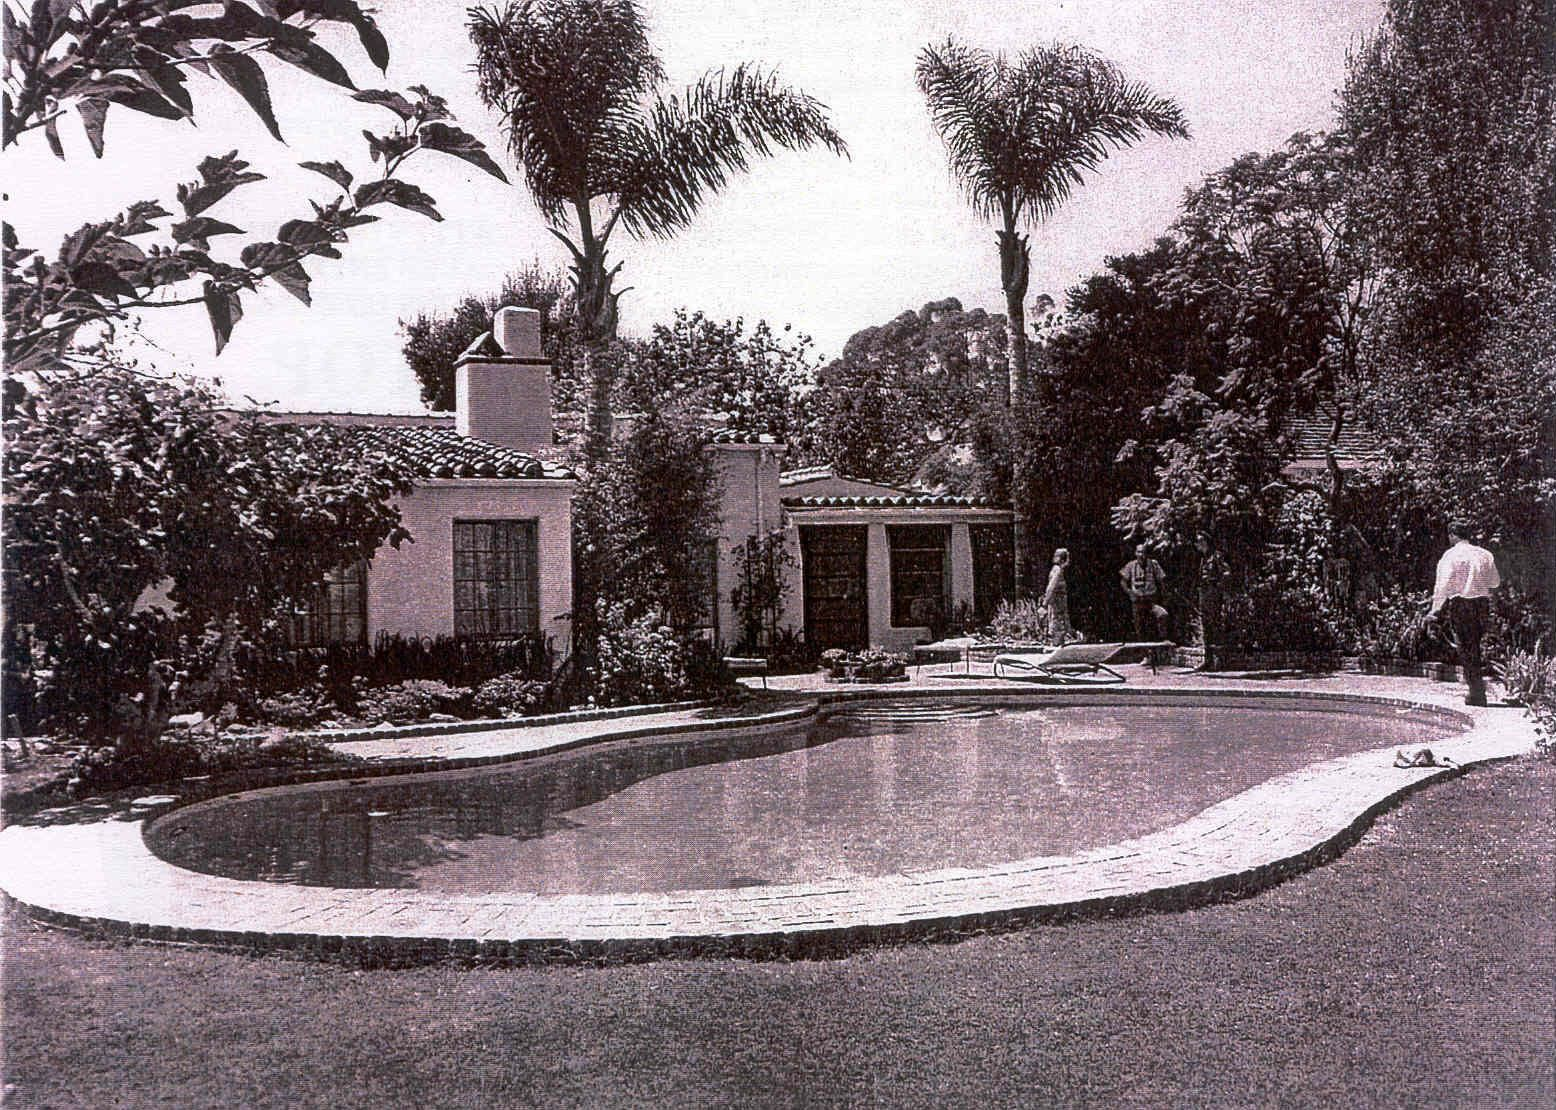 Marilyn Monroe's swimming pool, Fifth Helena Drive, 1962